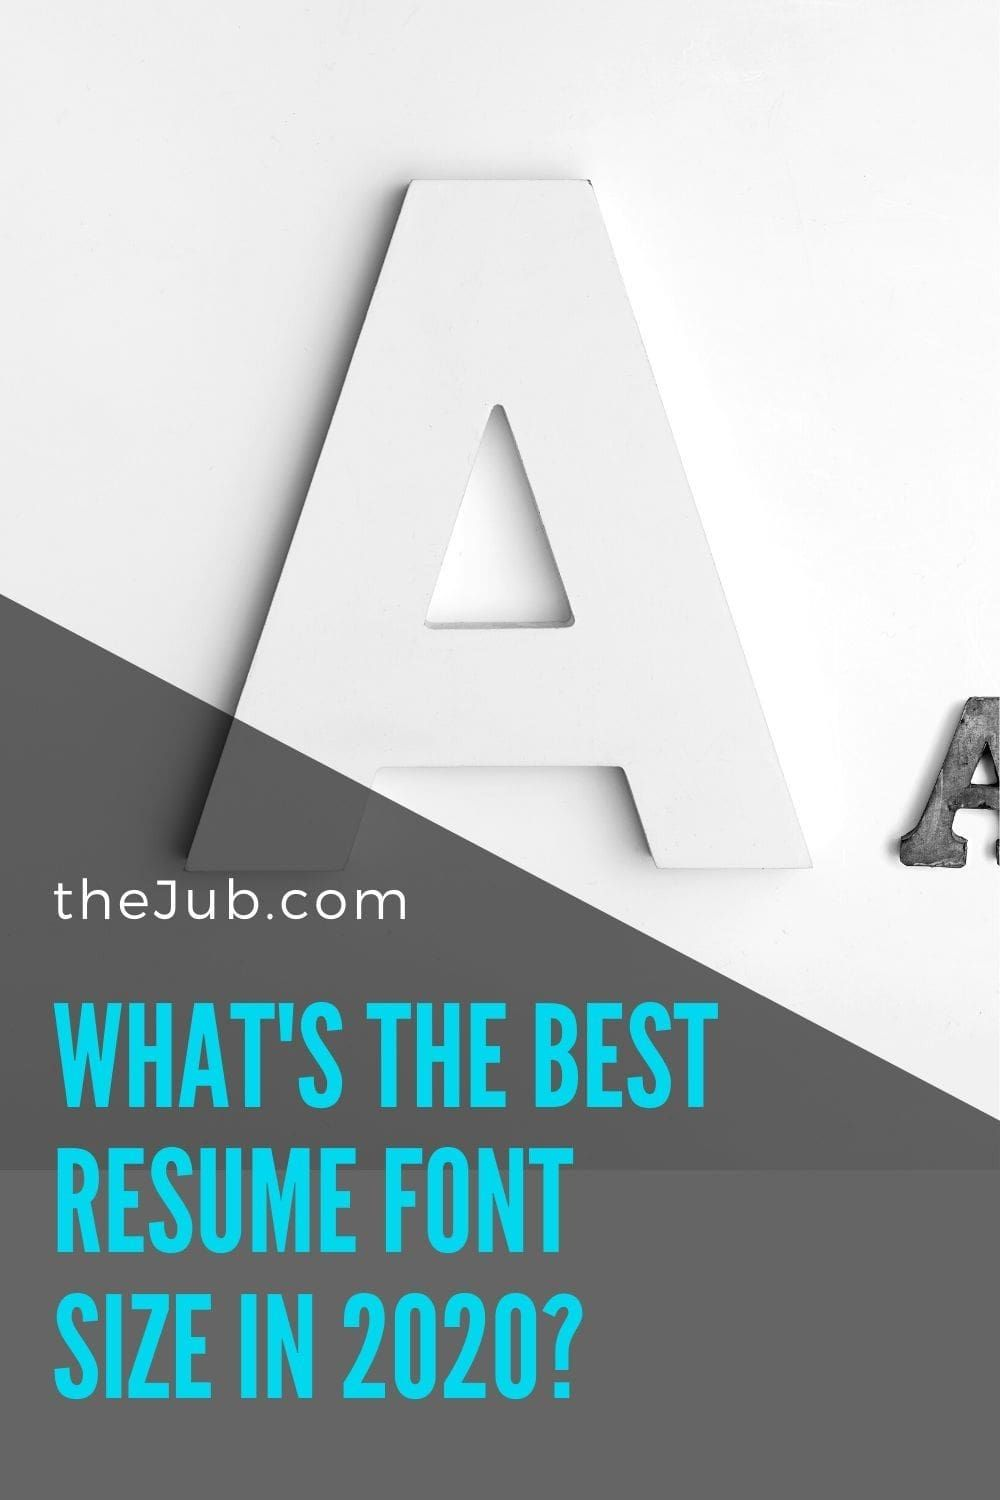 What's the Best Resume Font Size in 2020? in 2020 Resume